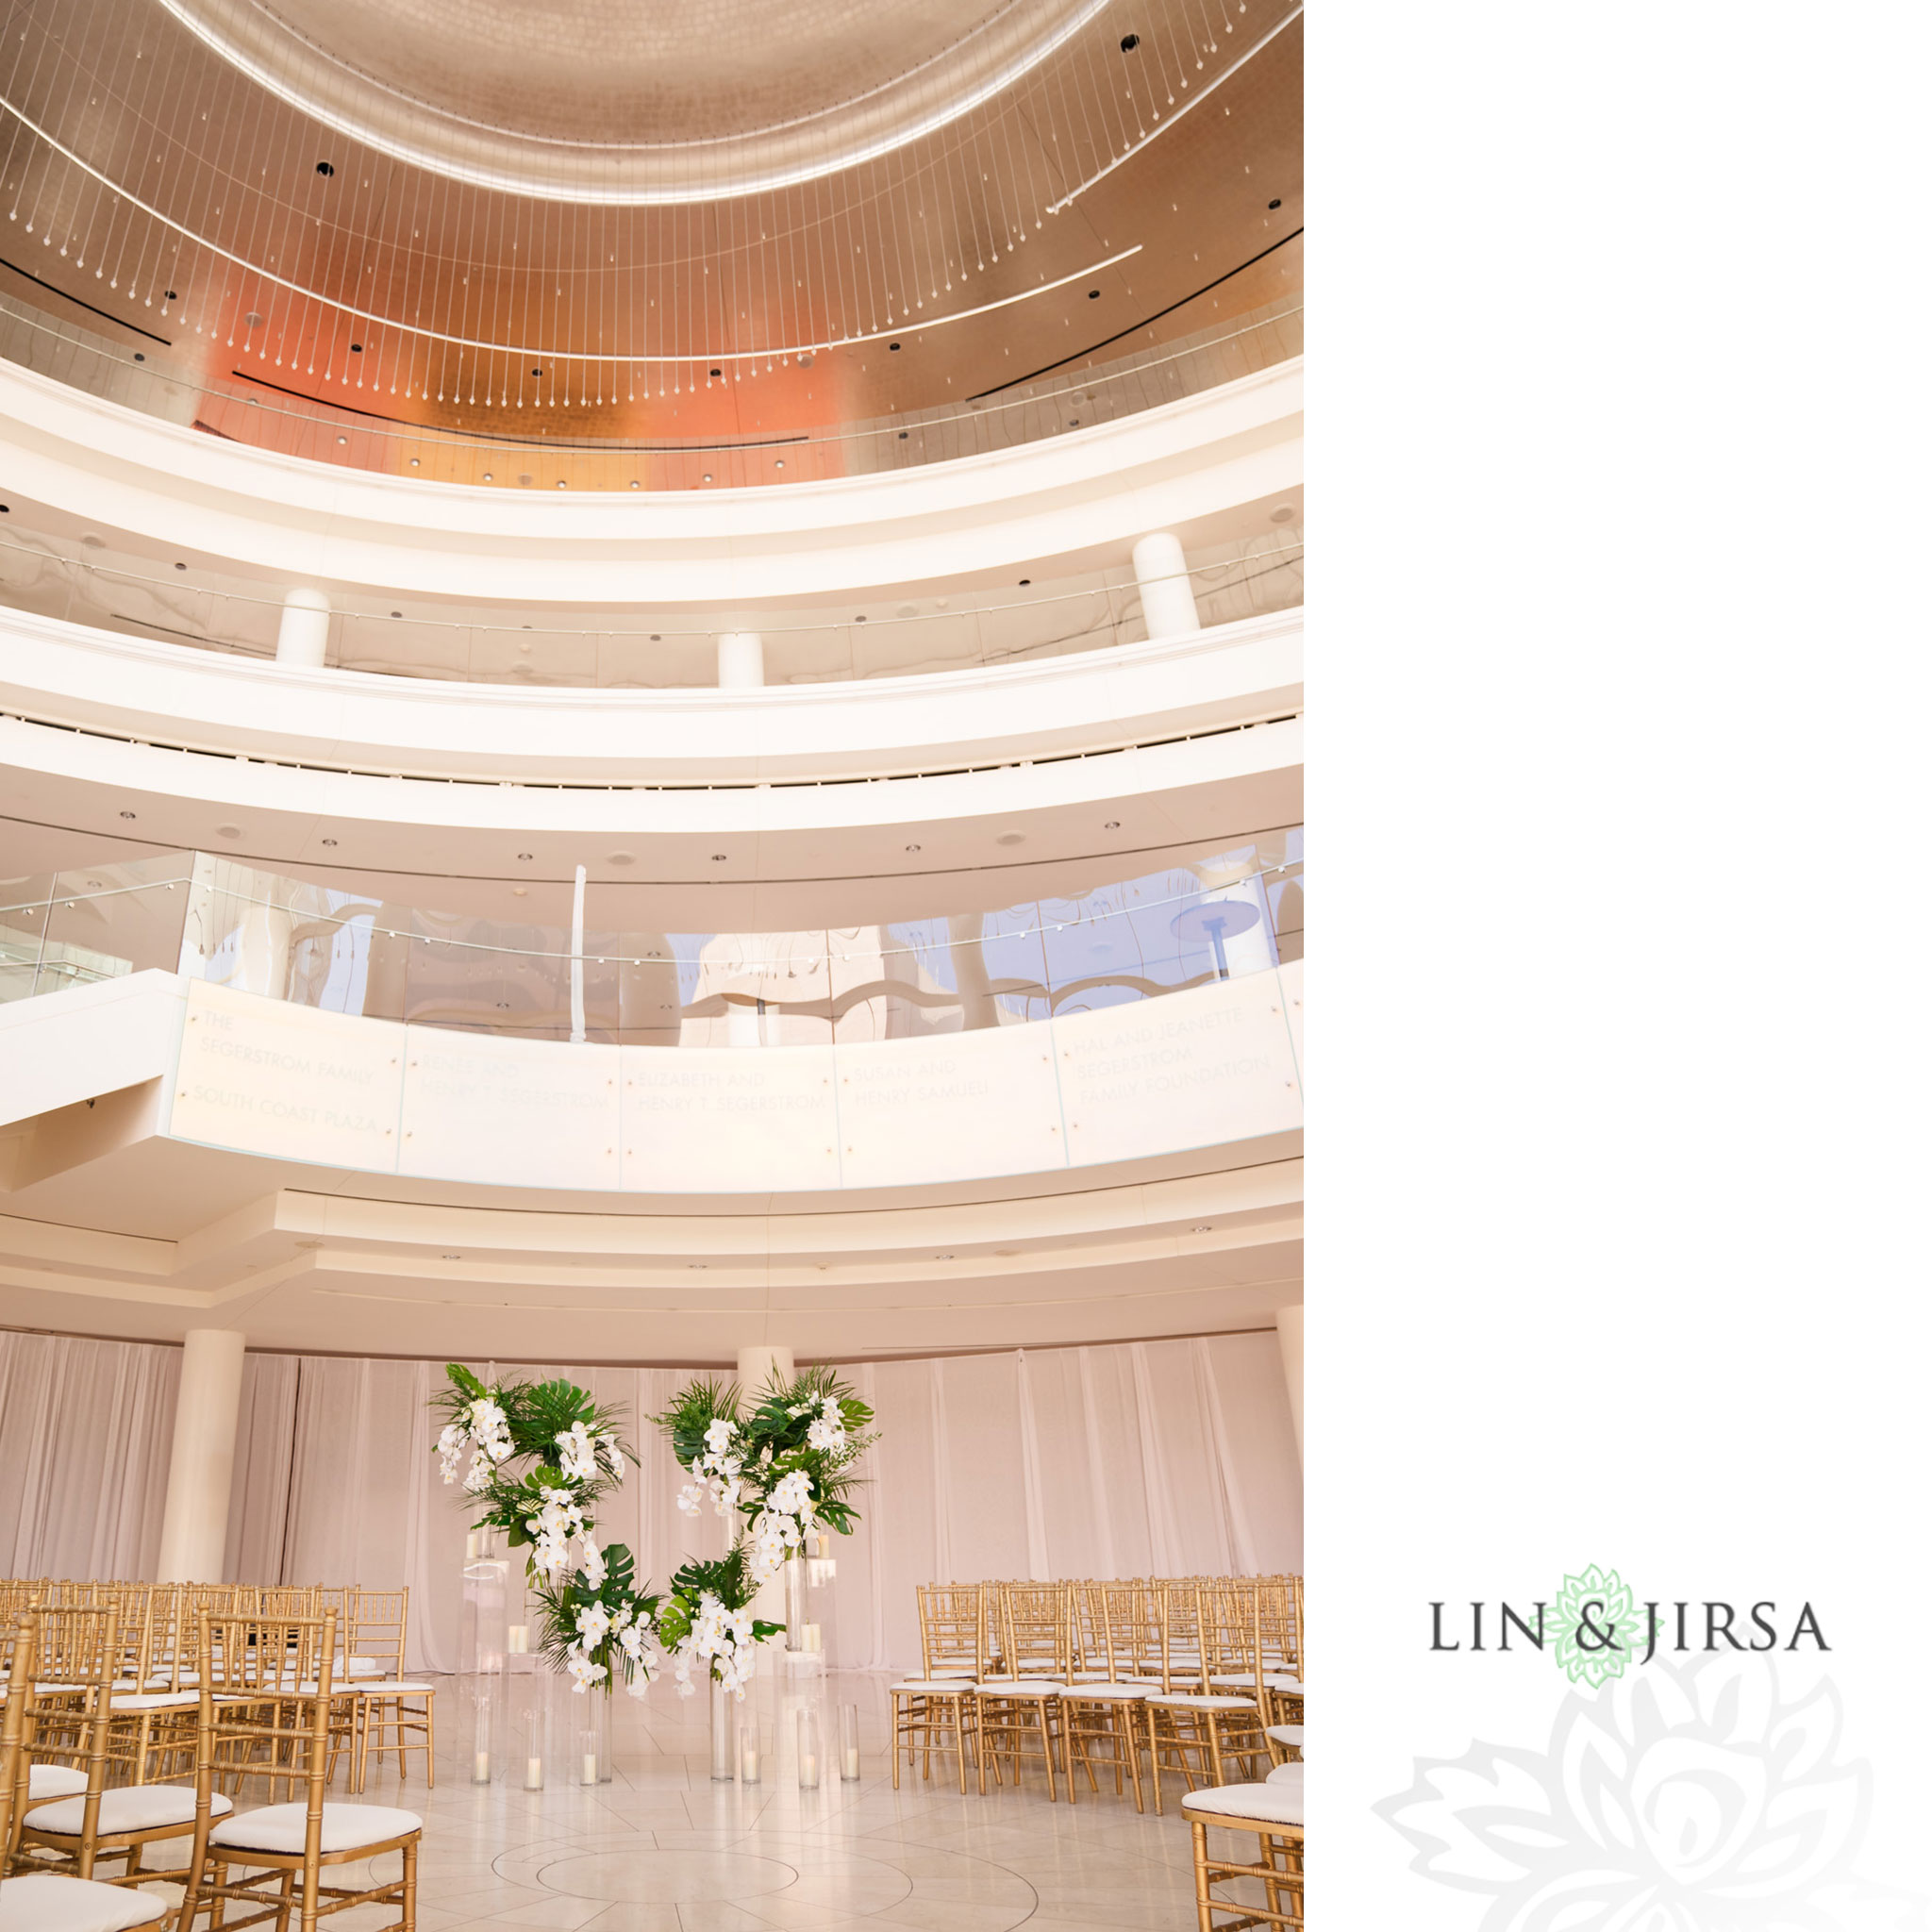 20 segerstrom center for the arts costa mesa wedding photography